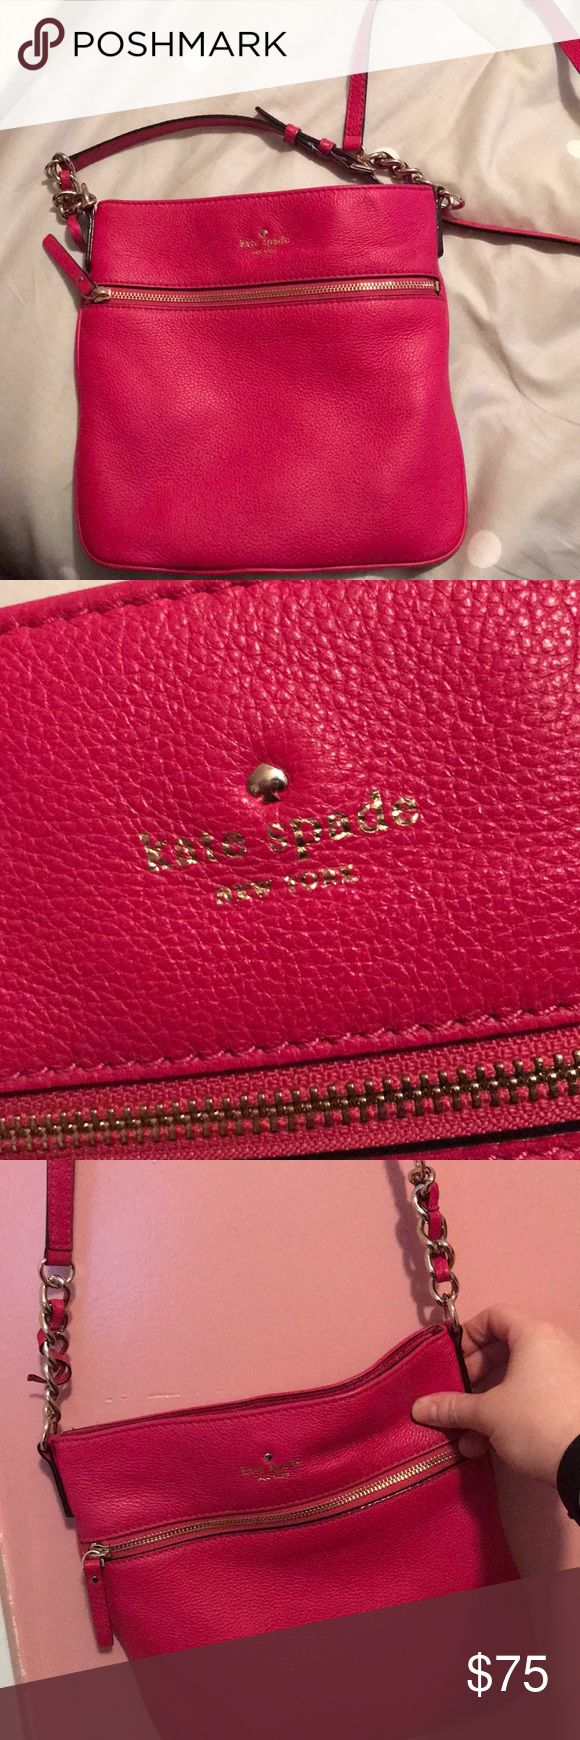 Kate Spade Cross Body Satchel Bright pink Kate Spade Satchel perfect for the upcoming spring season! This bag is used but taken excellent care of with hardly any signs of wear. kate spade Bags Satchels